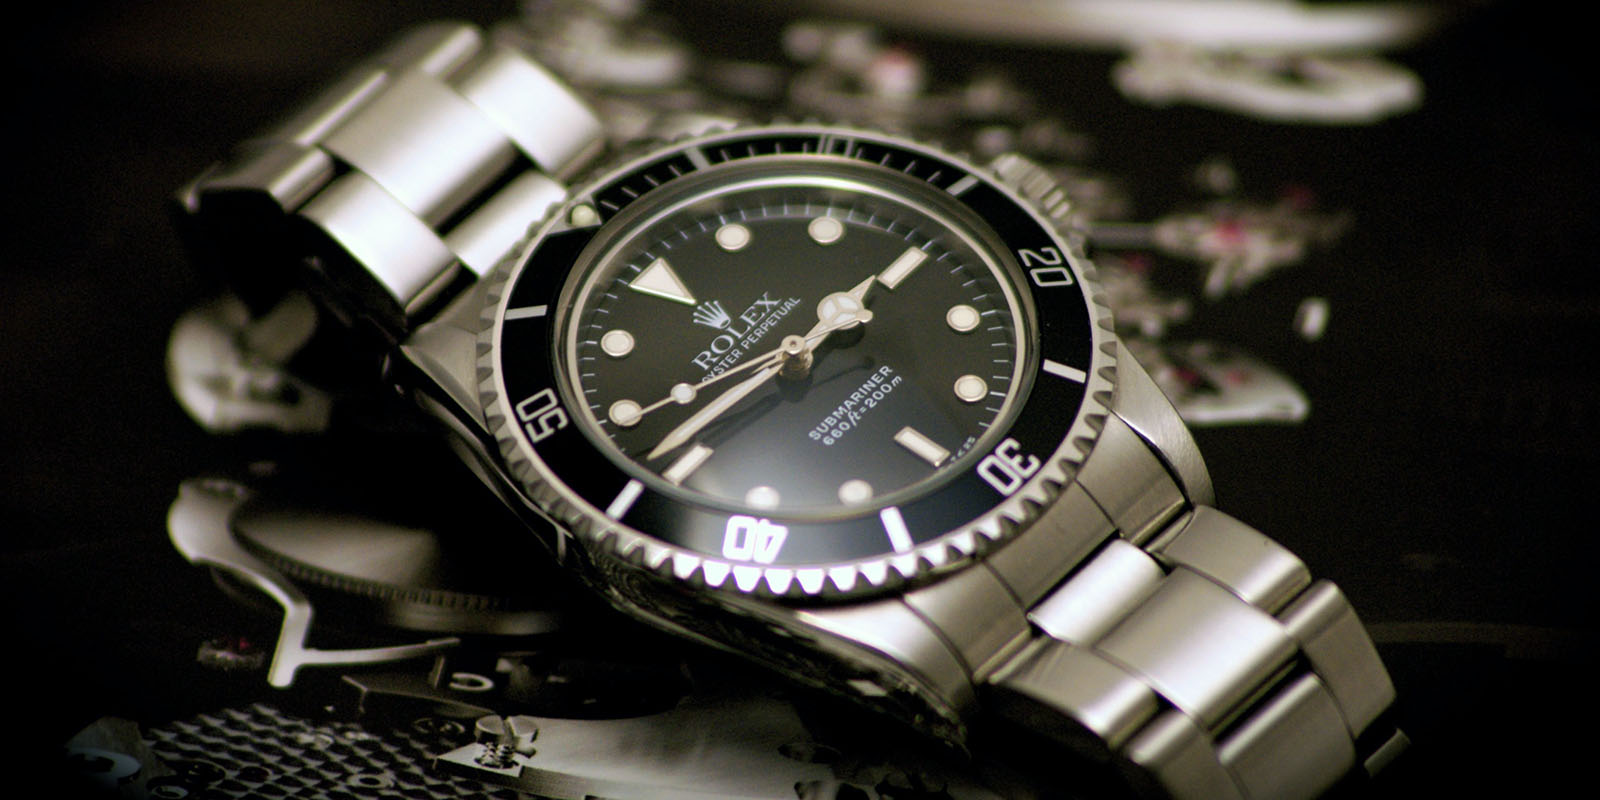 Compro Rolex Submariner Fleming - Contattaci per un preventivo